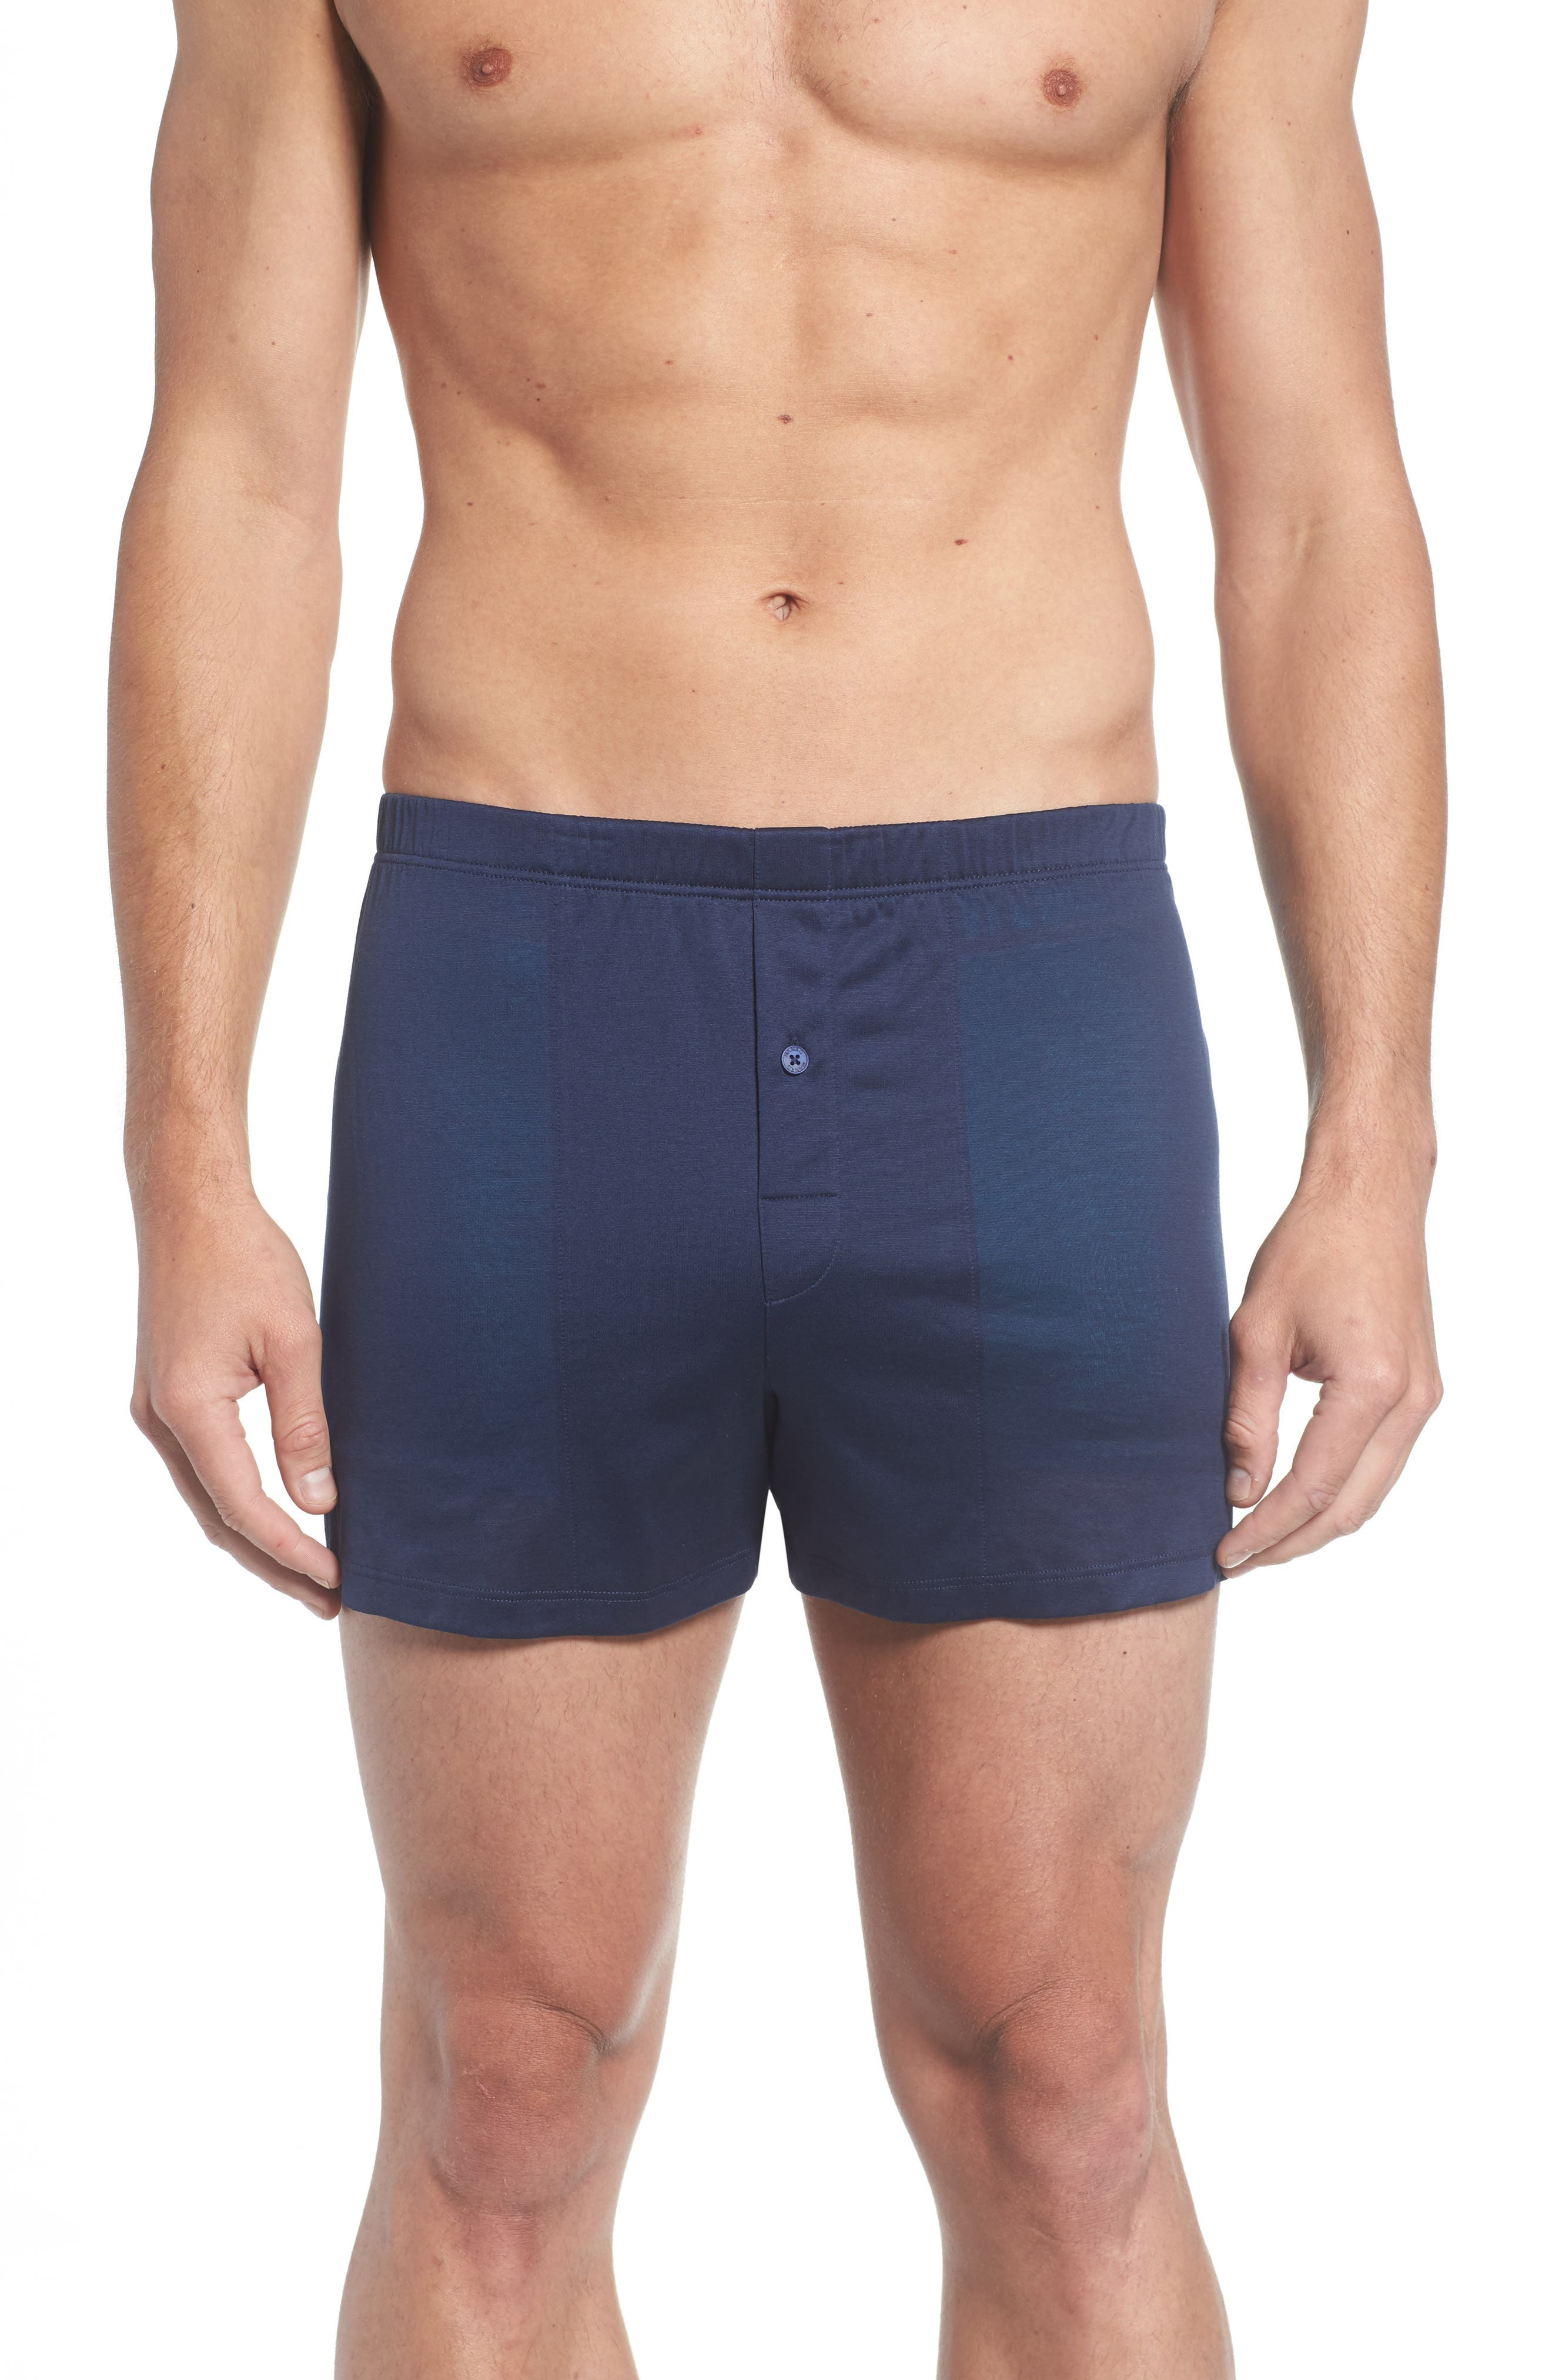 Cotton Sporty Knit Boxers,                             Main thumbnail 1, color,                             Midnight Navy